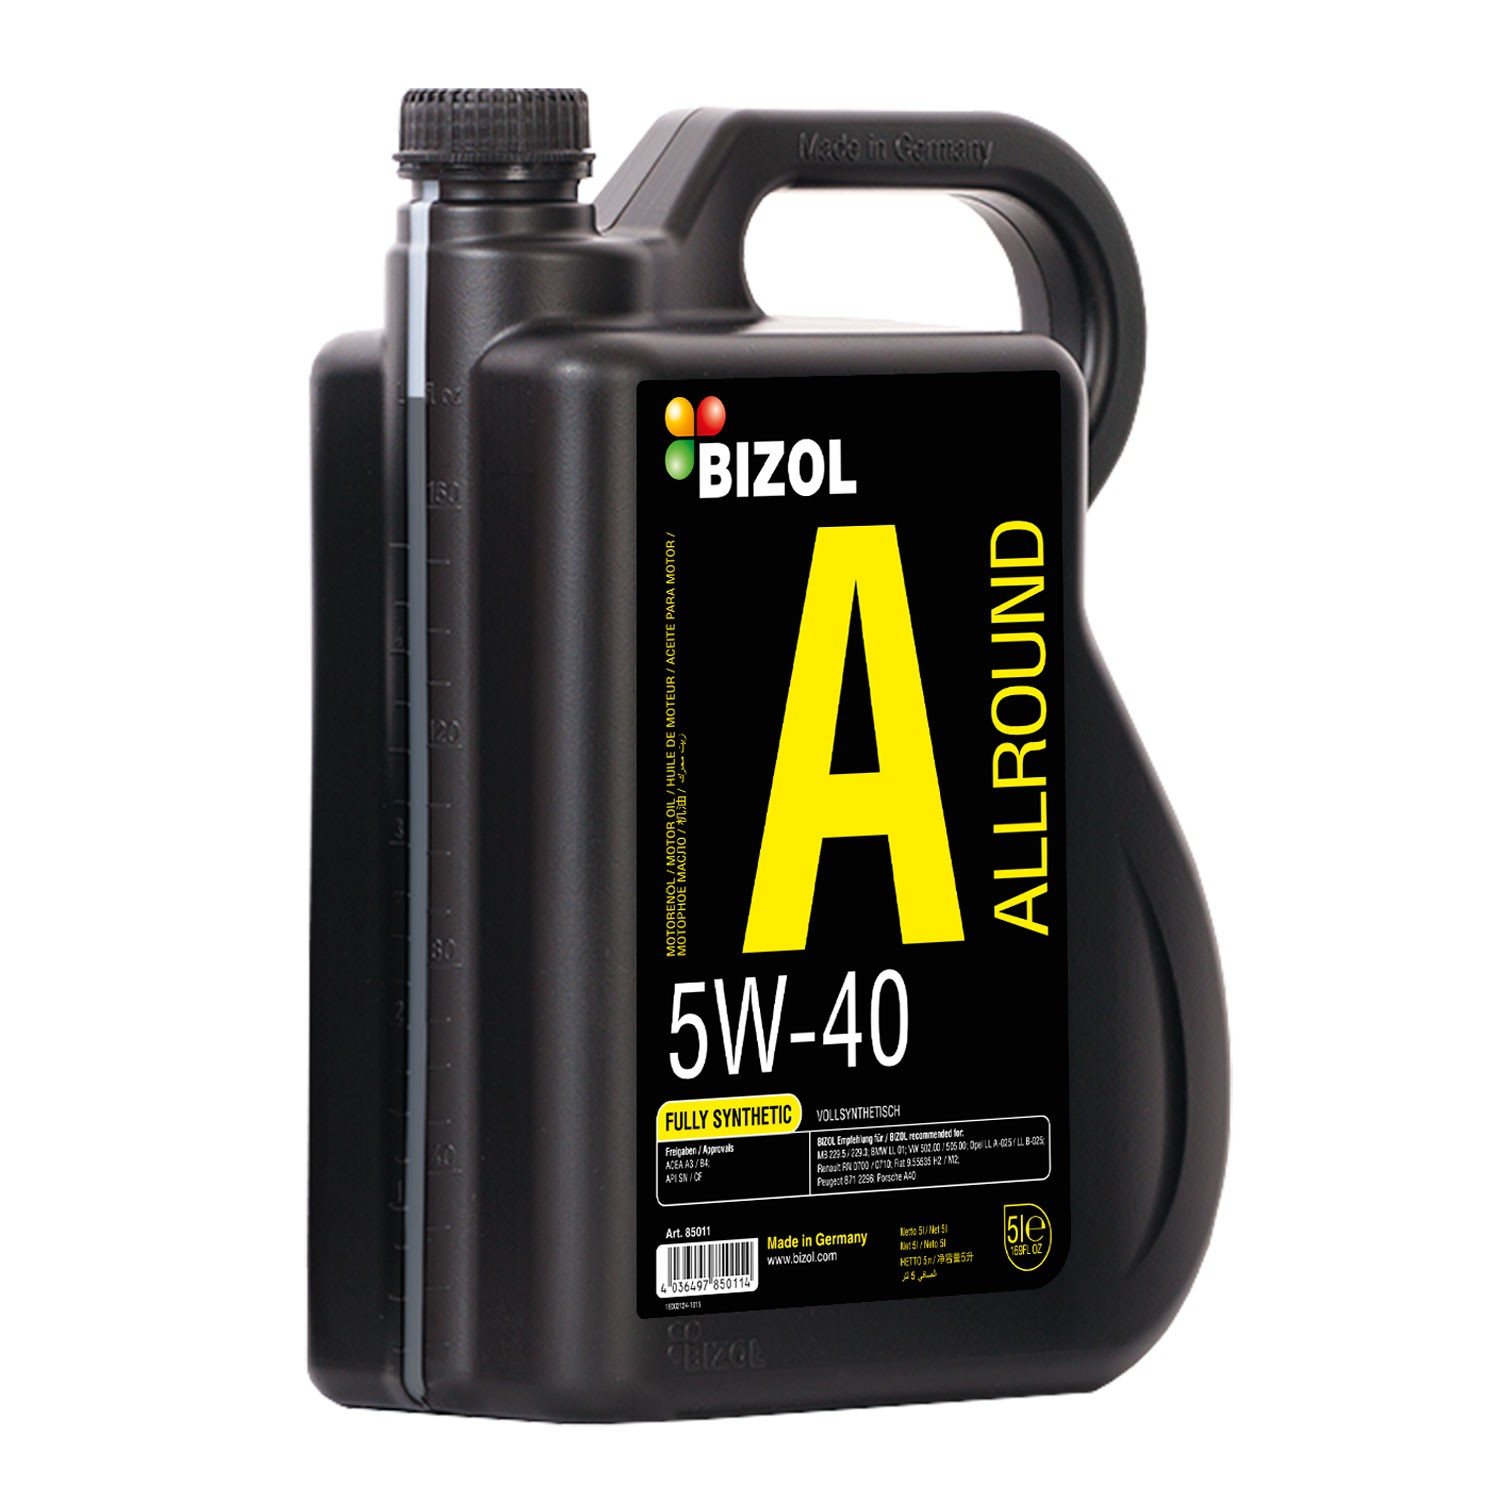 5 W 40 Bizol Allround 5w 40